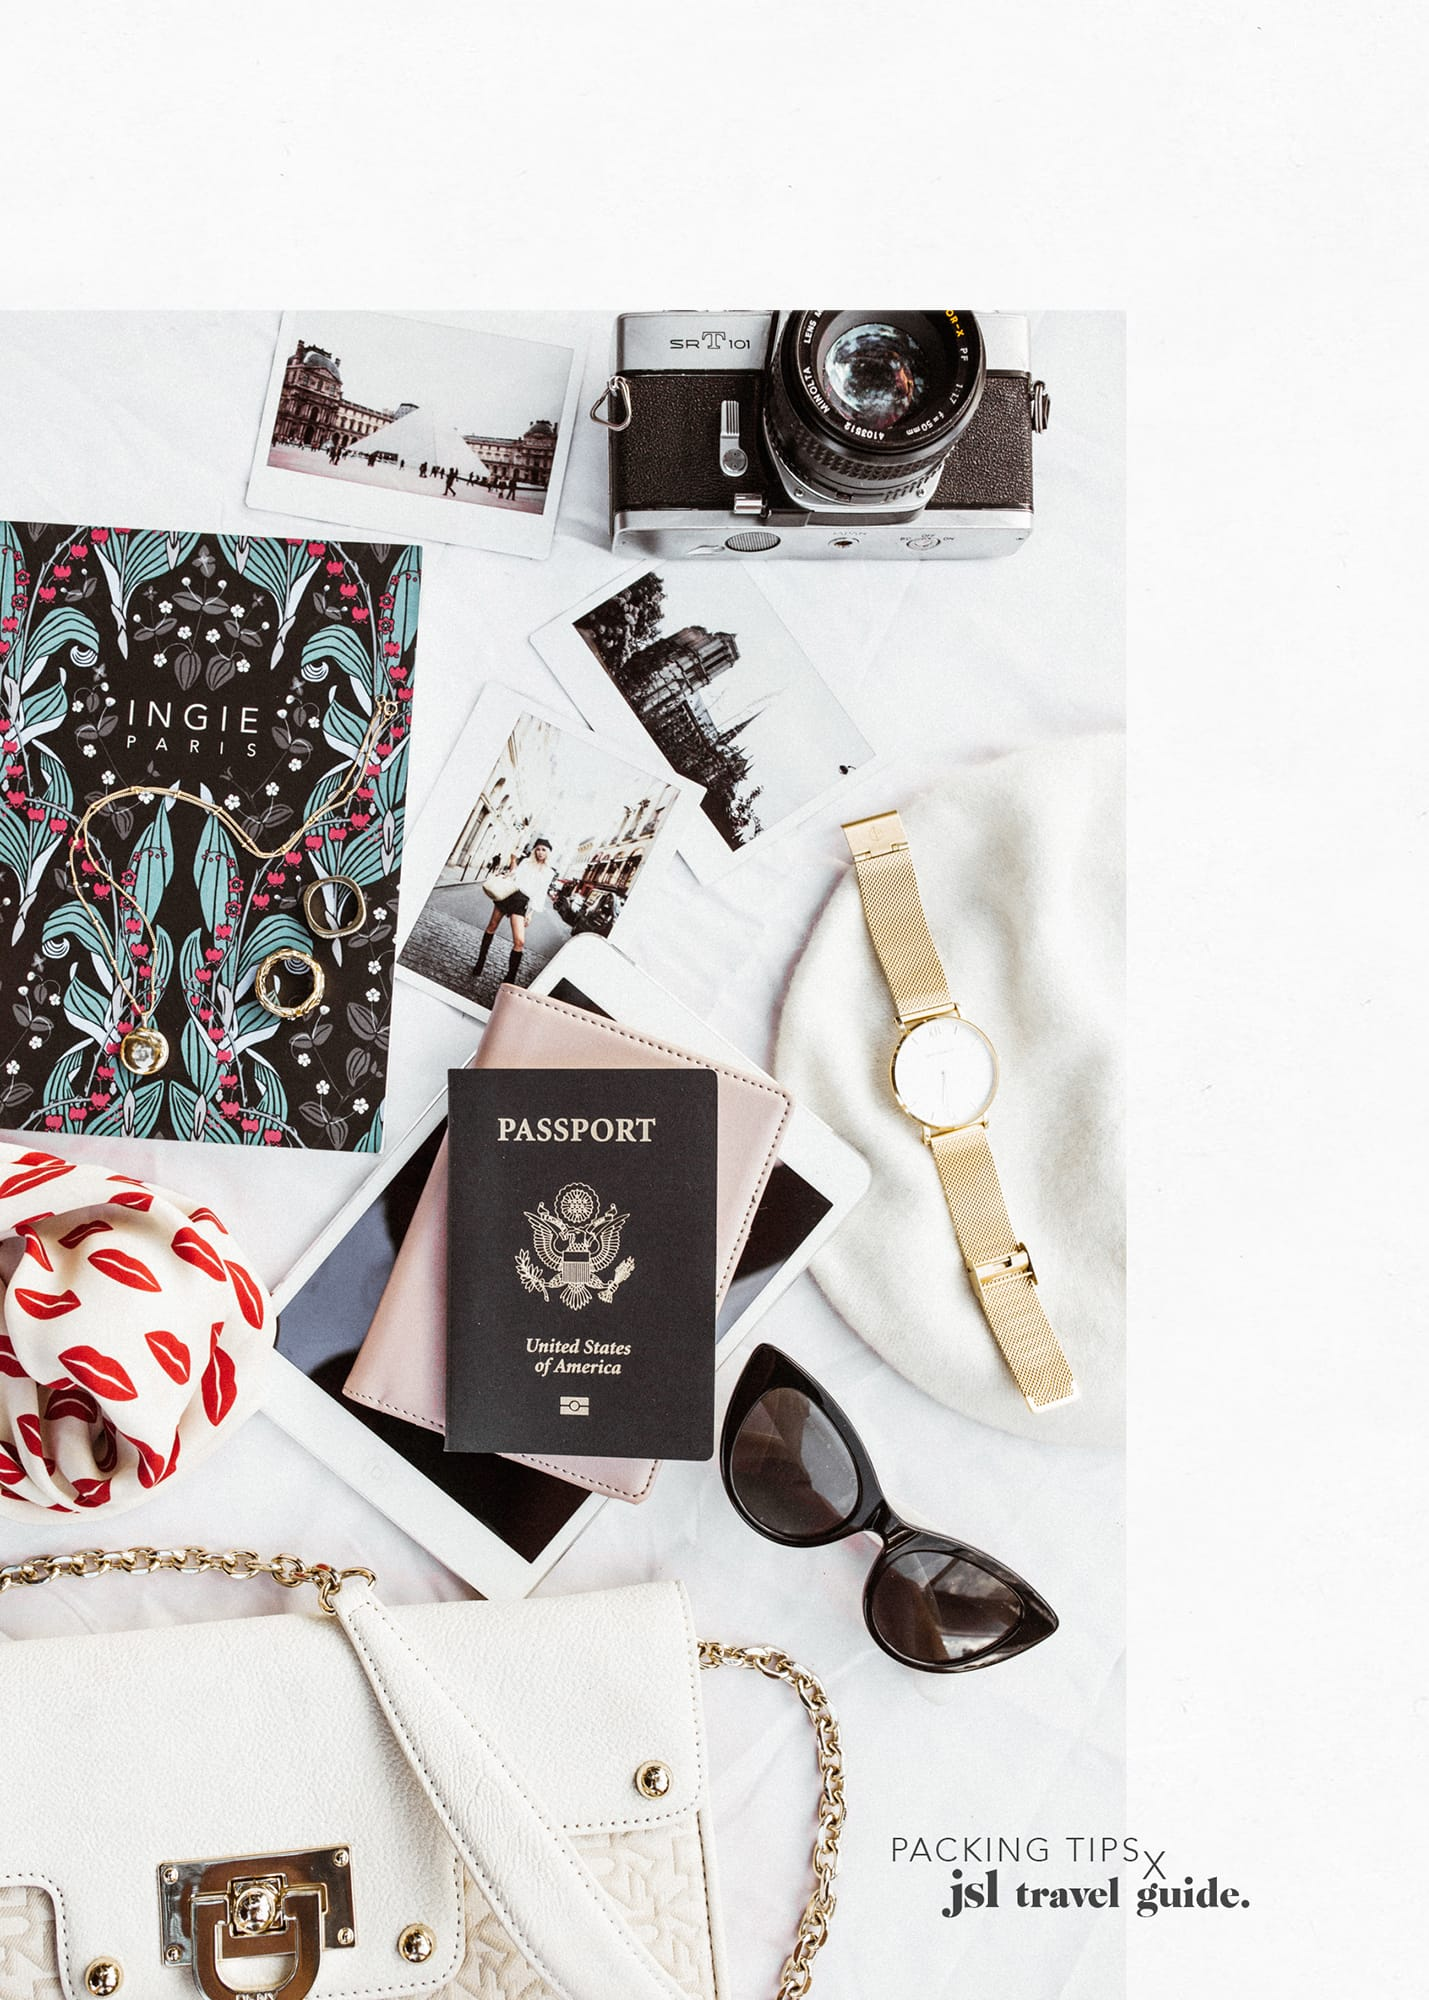 JSL Travel Guide: Packing Tips